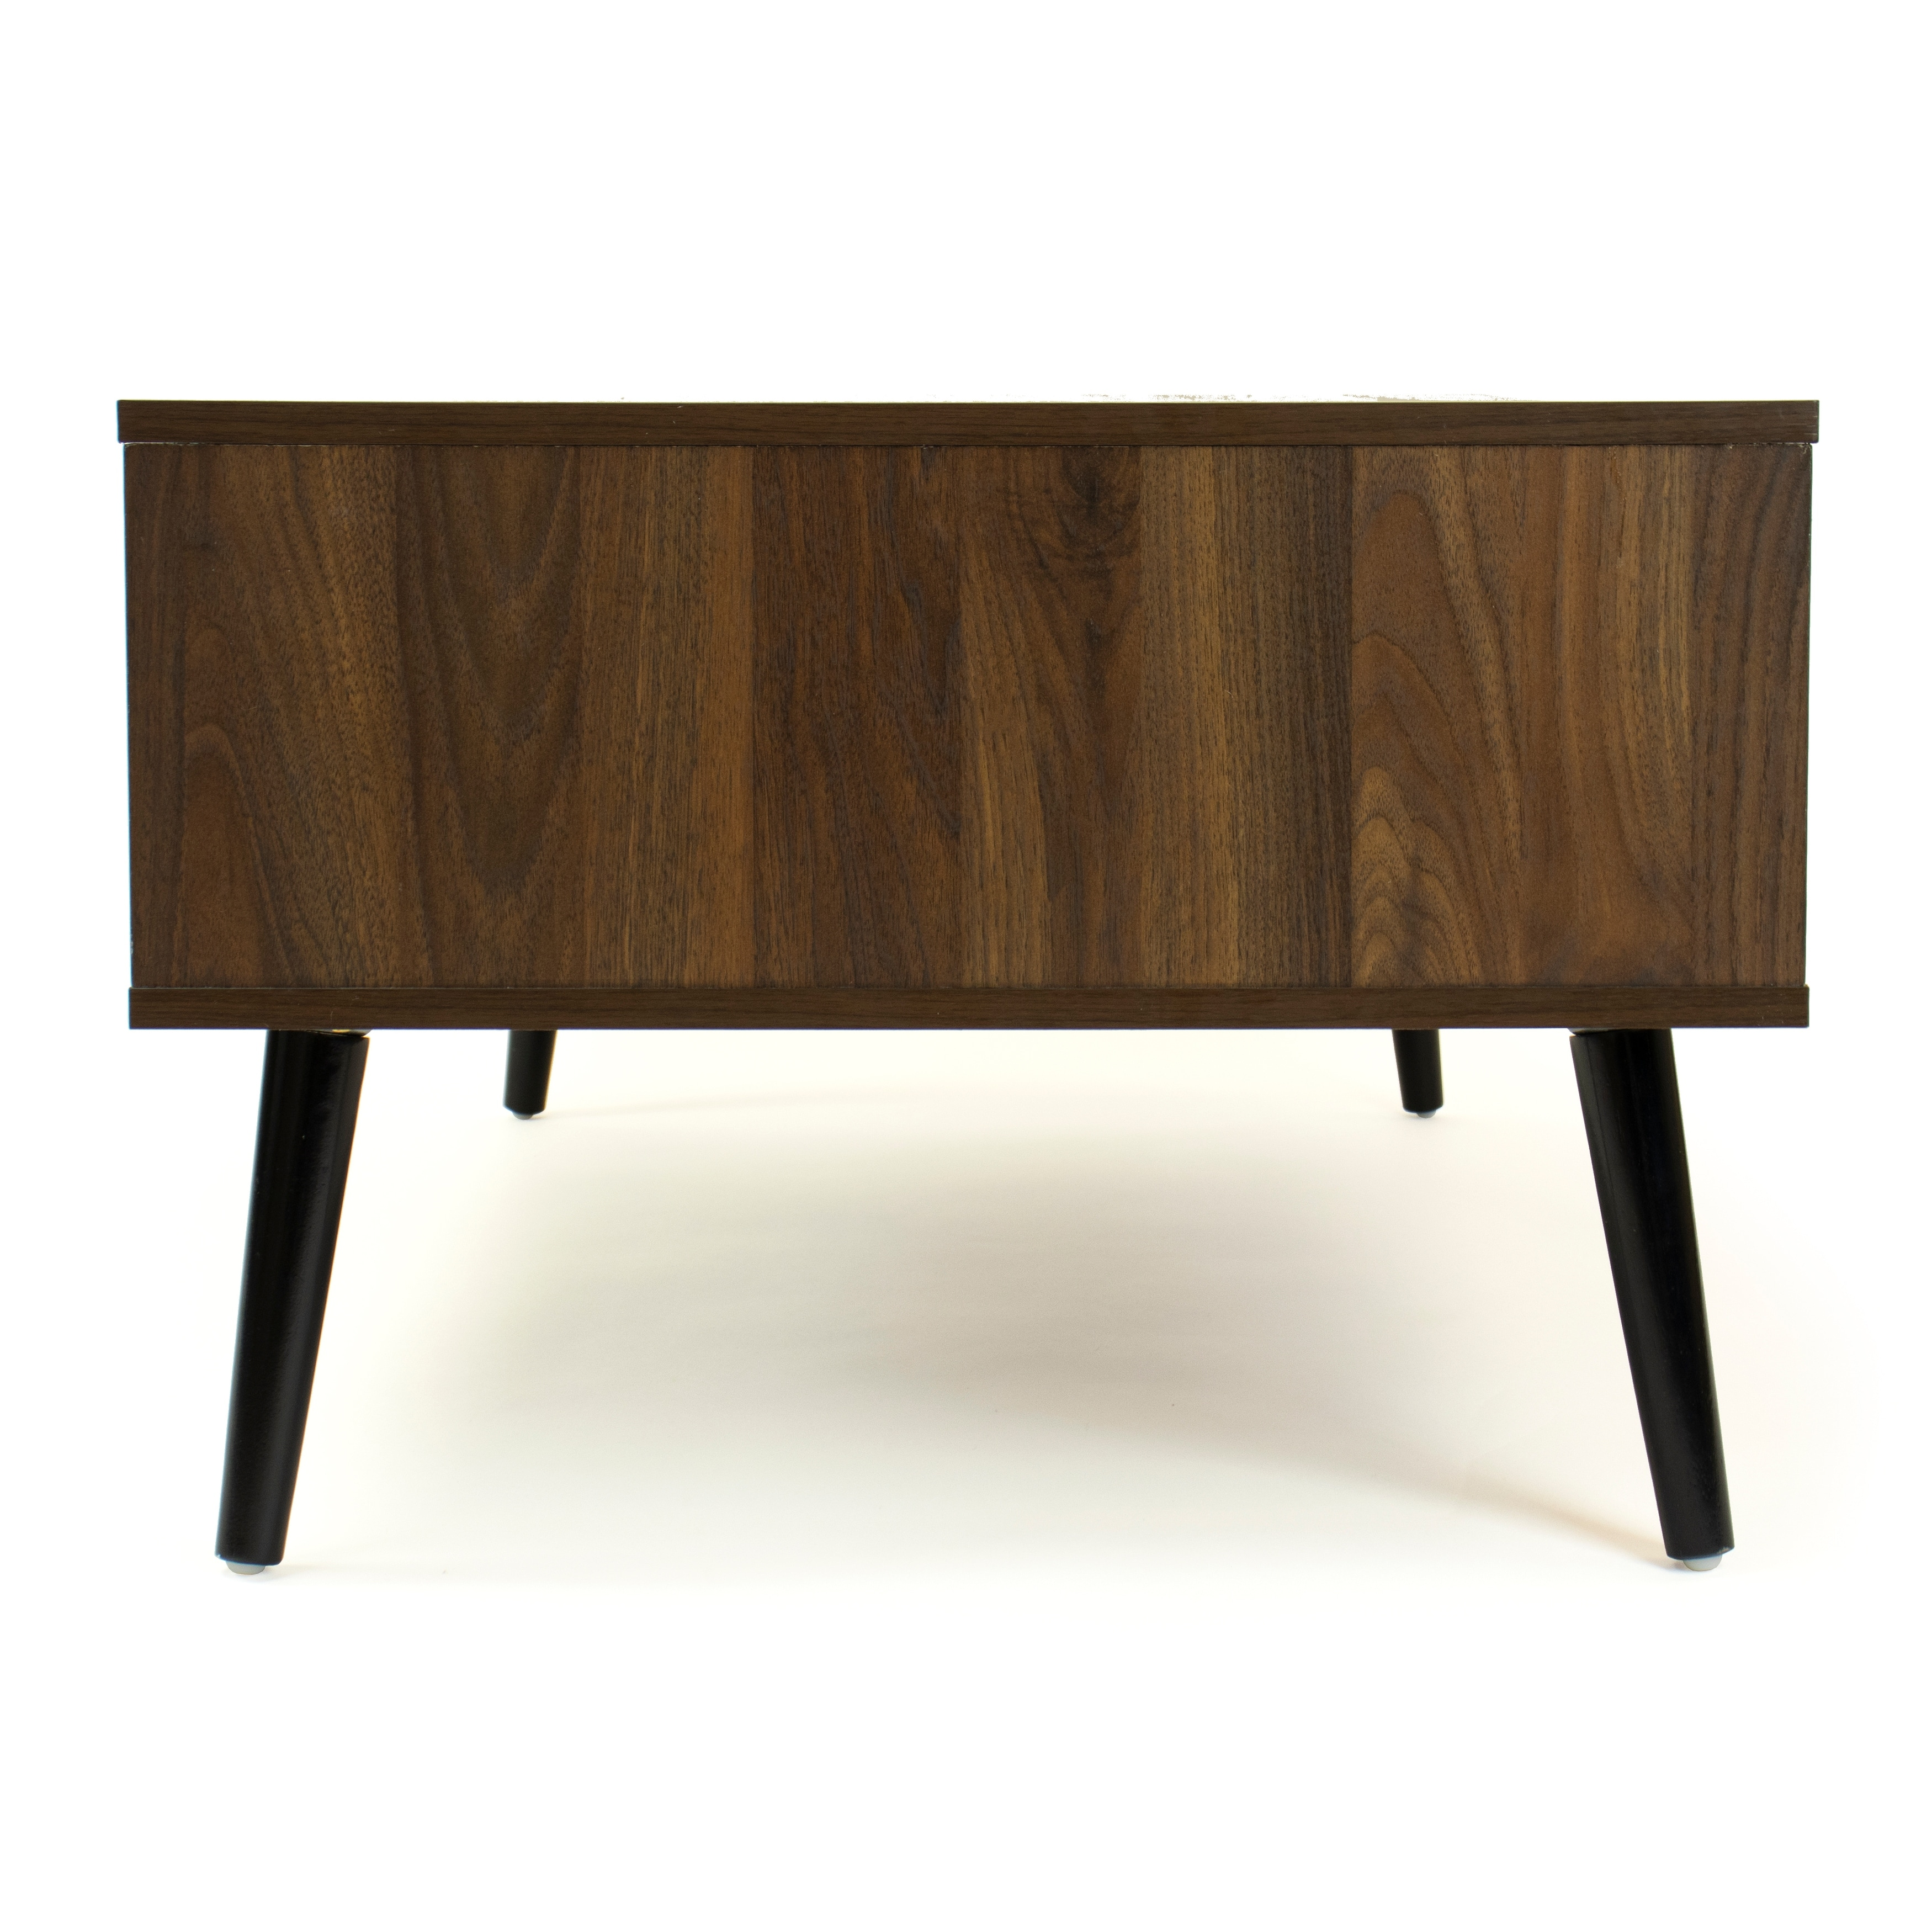 humble crew low mid century coffee table with open shelf and drawer storage dark wood black 54 x 84